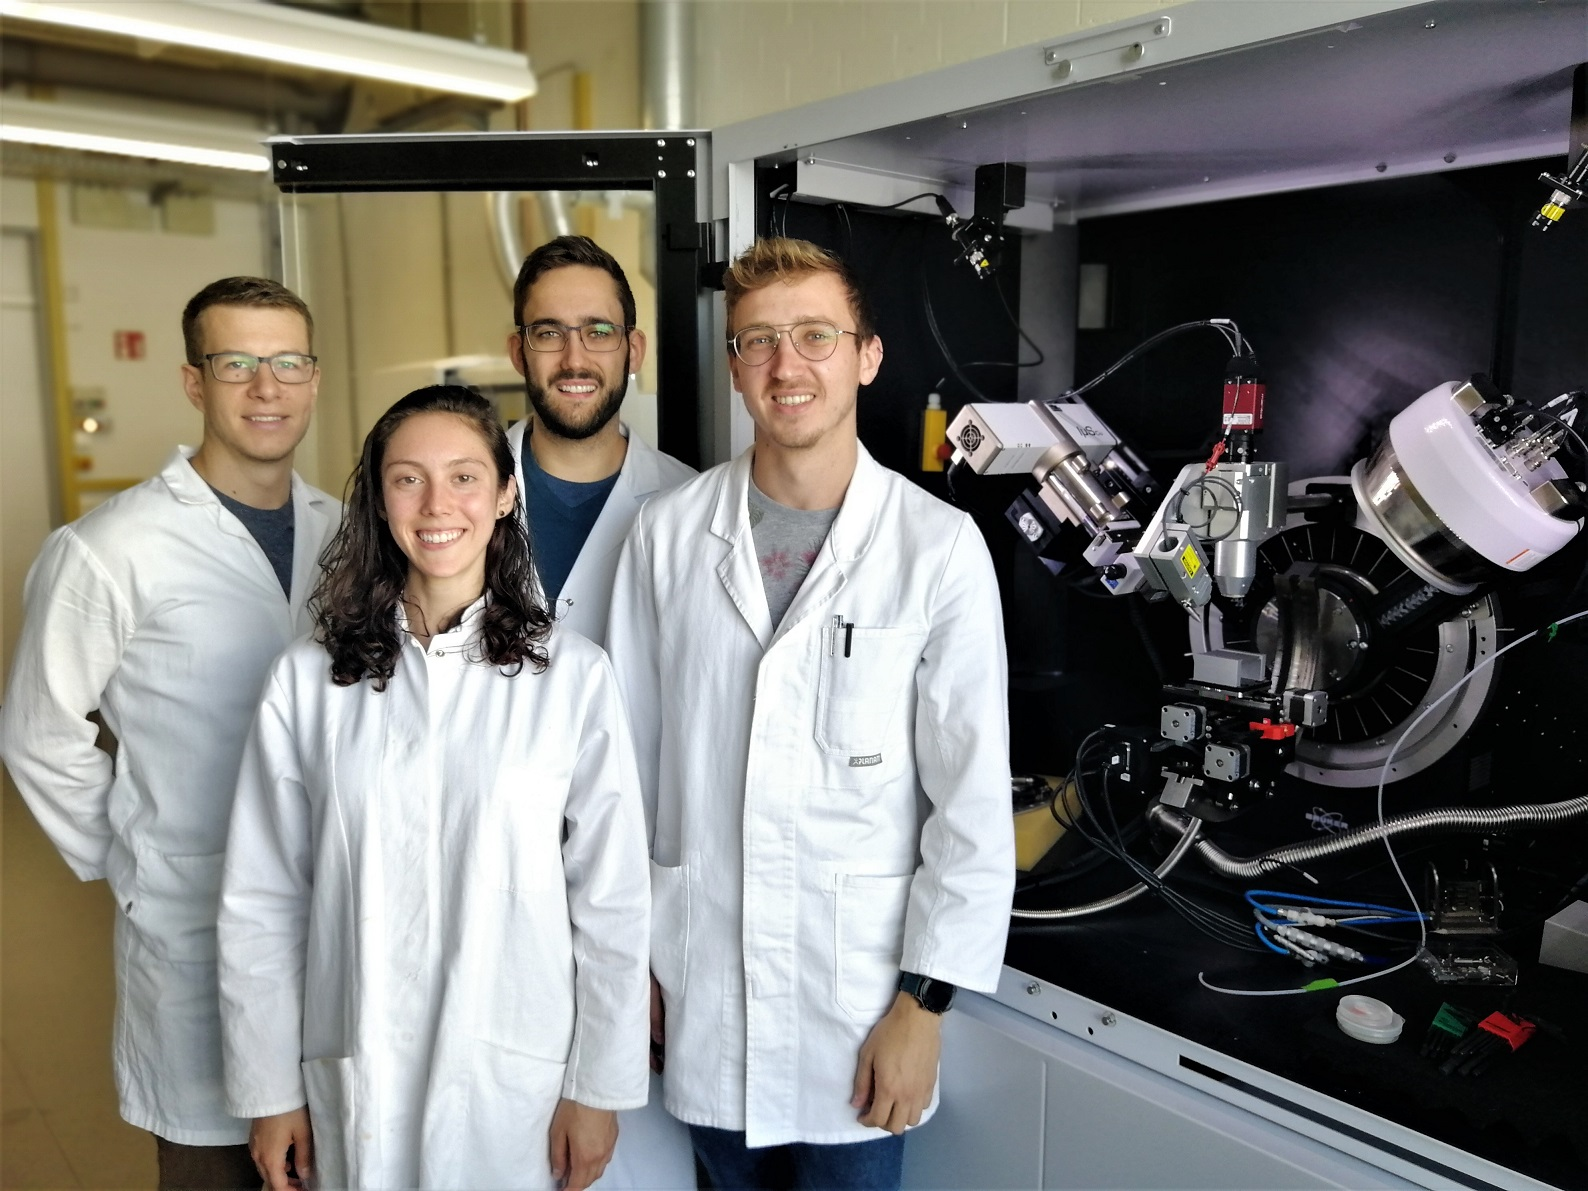 PhDs with students from the USA and Israel in the lab (from the left): Dominik Büchner, Deborah Turetsky (RISE), Markus Witzler and Roman Kolevatov (NRW-Nahost). Photo: Philipp Gillemot (2019)